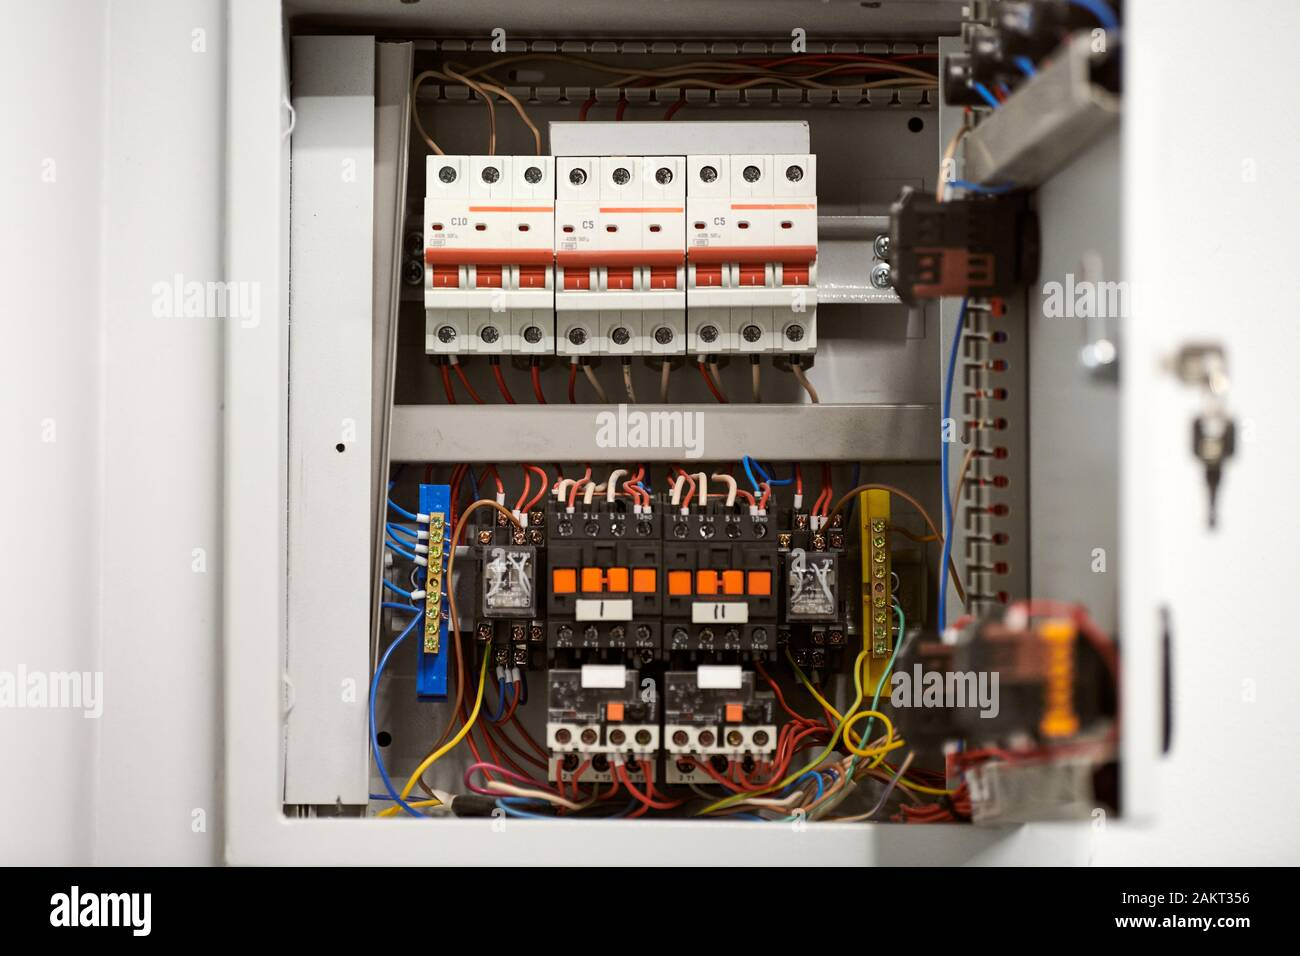 Electrical Distribution Board High Resolution Stock Photography And Images Alamy